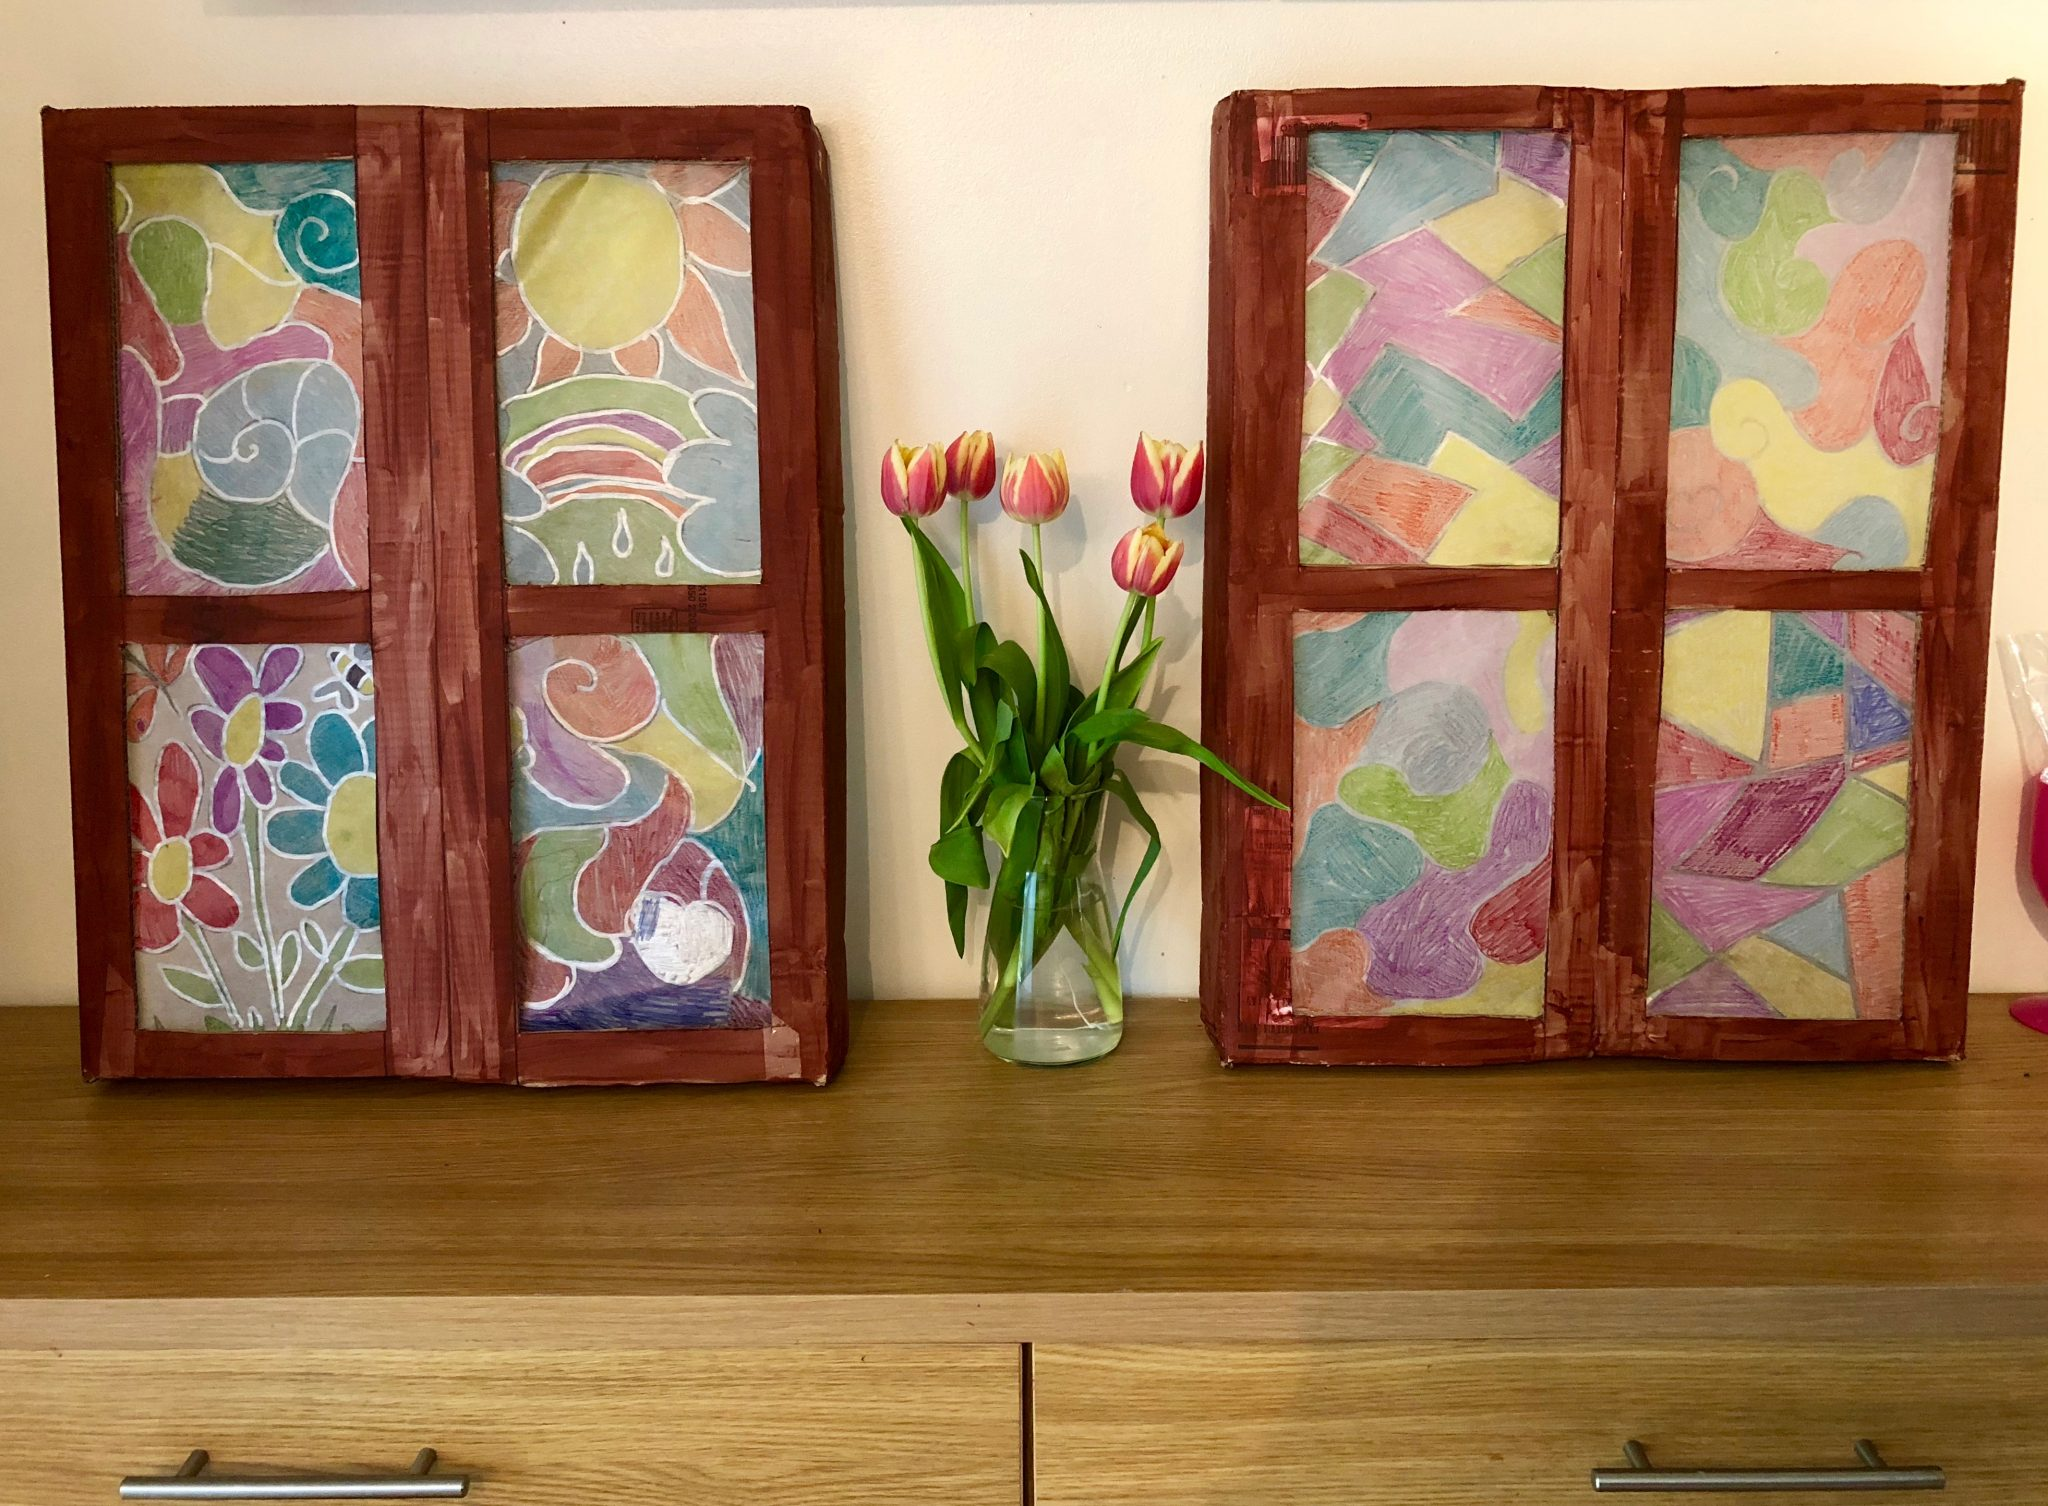 Homemade stained glass windows